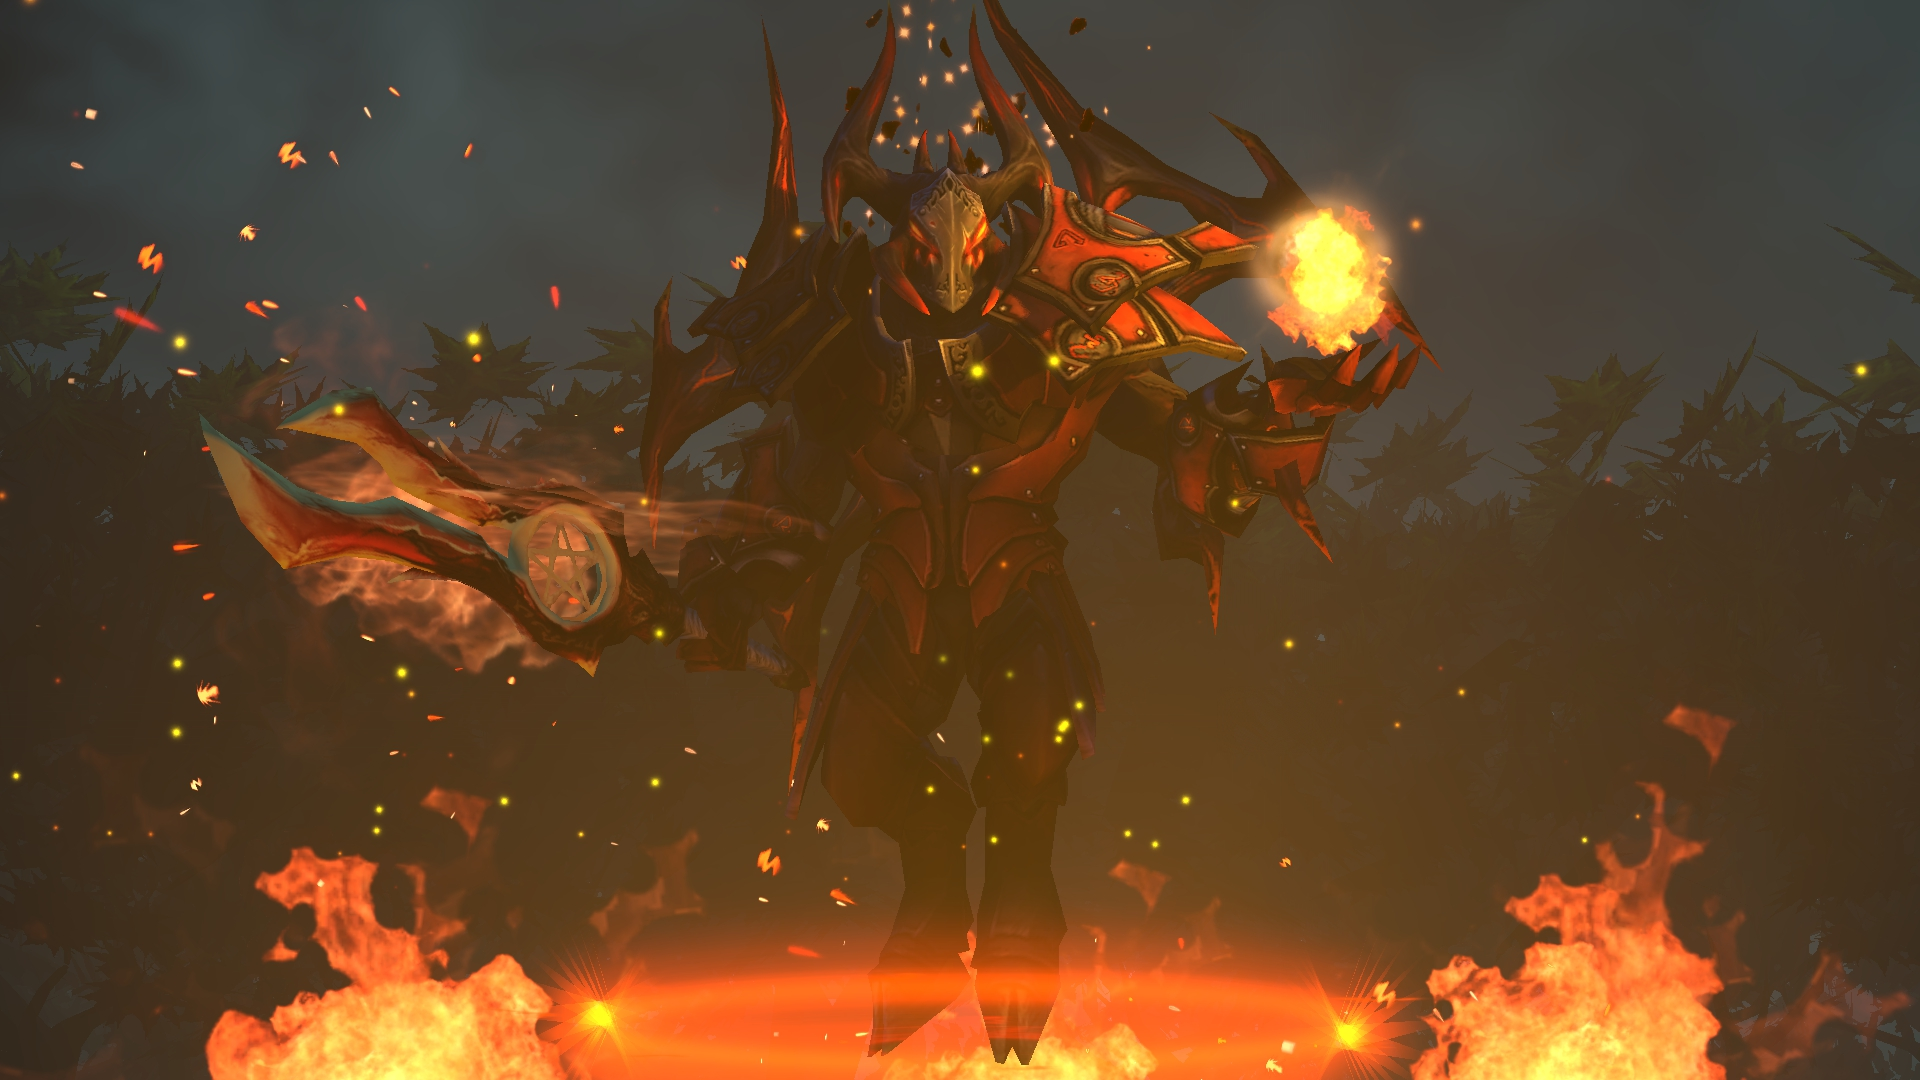 dota 2 doom lucifer 3h wallpaper hd